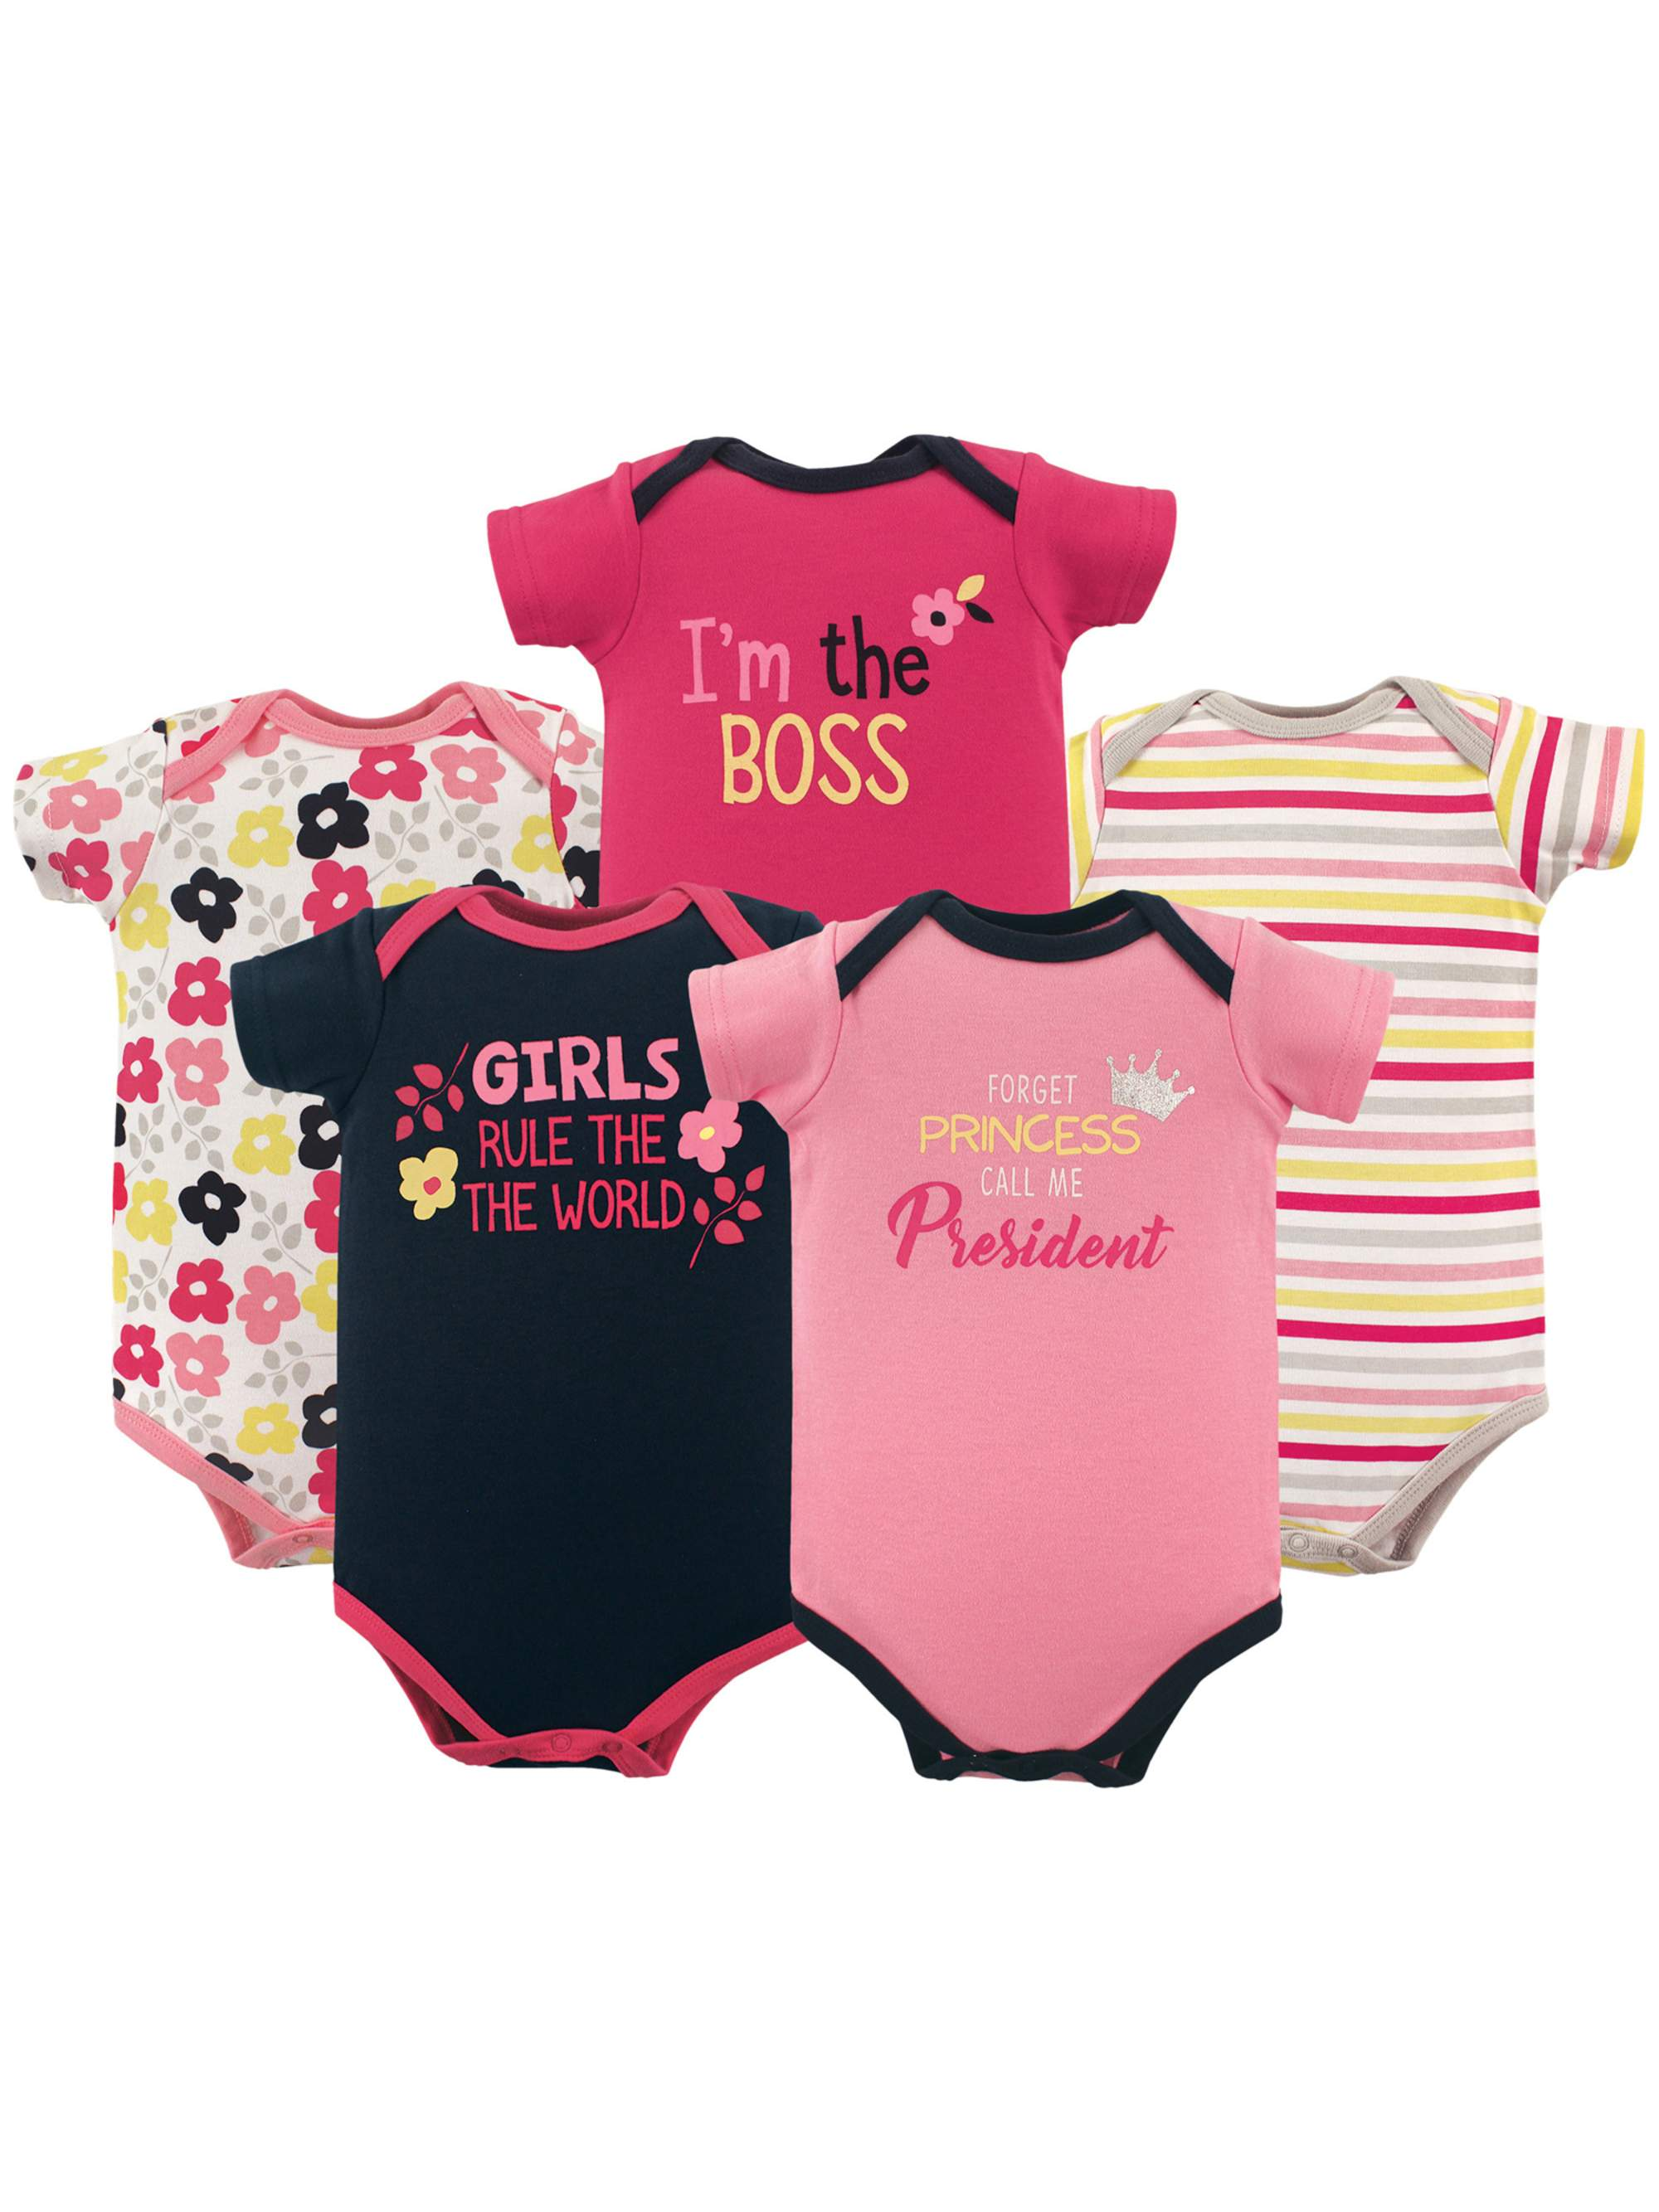 Basics Baby Girl Bodysuit Set, 5-pack